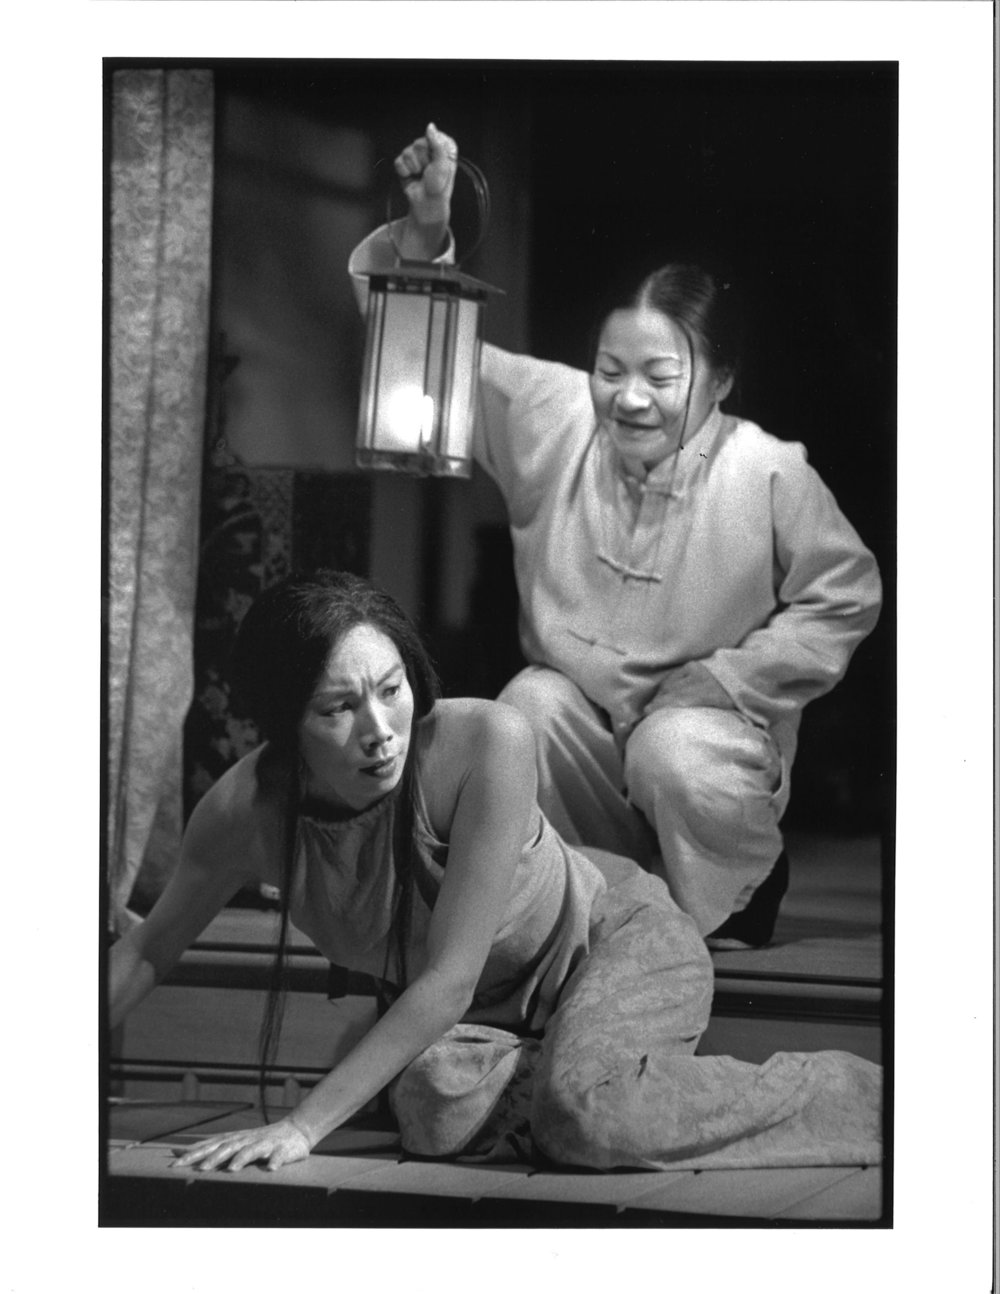 Jodi Long and Julyana Soelistyo Photo by Michal Daniels, from The Public Theater production in 1996.